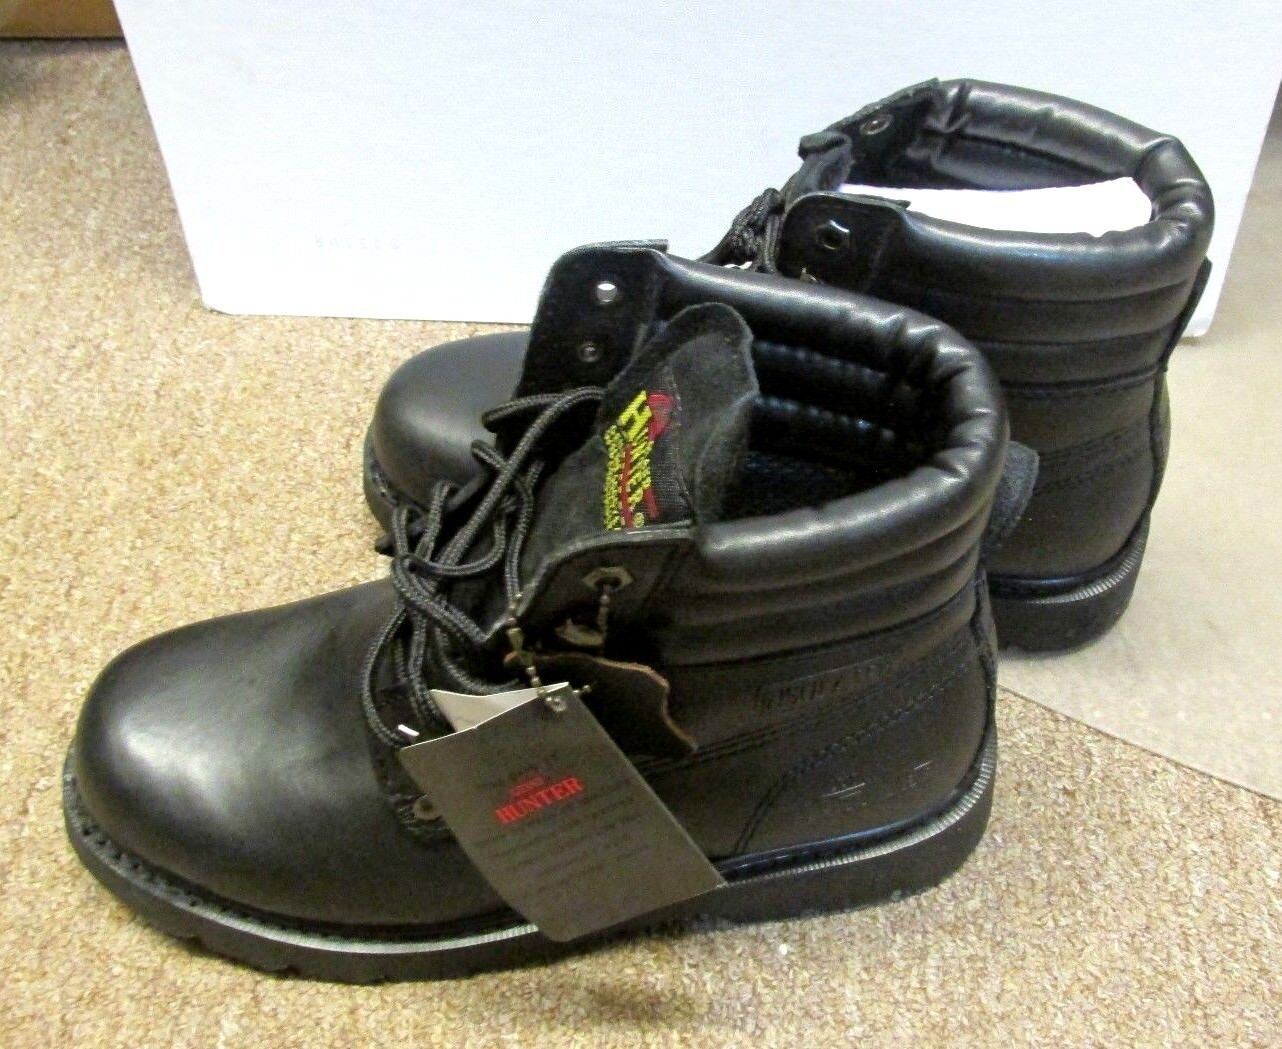 GRAND HUNTER HIGH TOP WORK Stiefel INSULATED OIL OIL INSULATED RESISTANT SIZE 7 STYLE 600 BLACK c25153